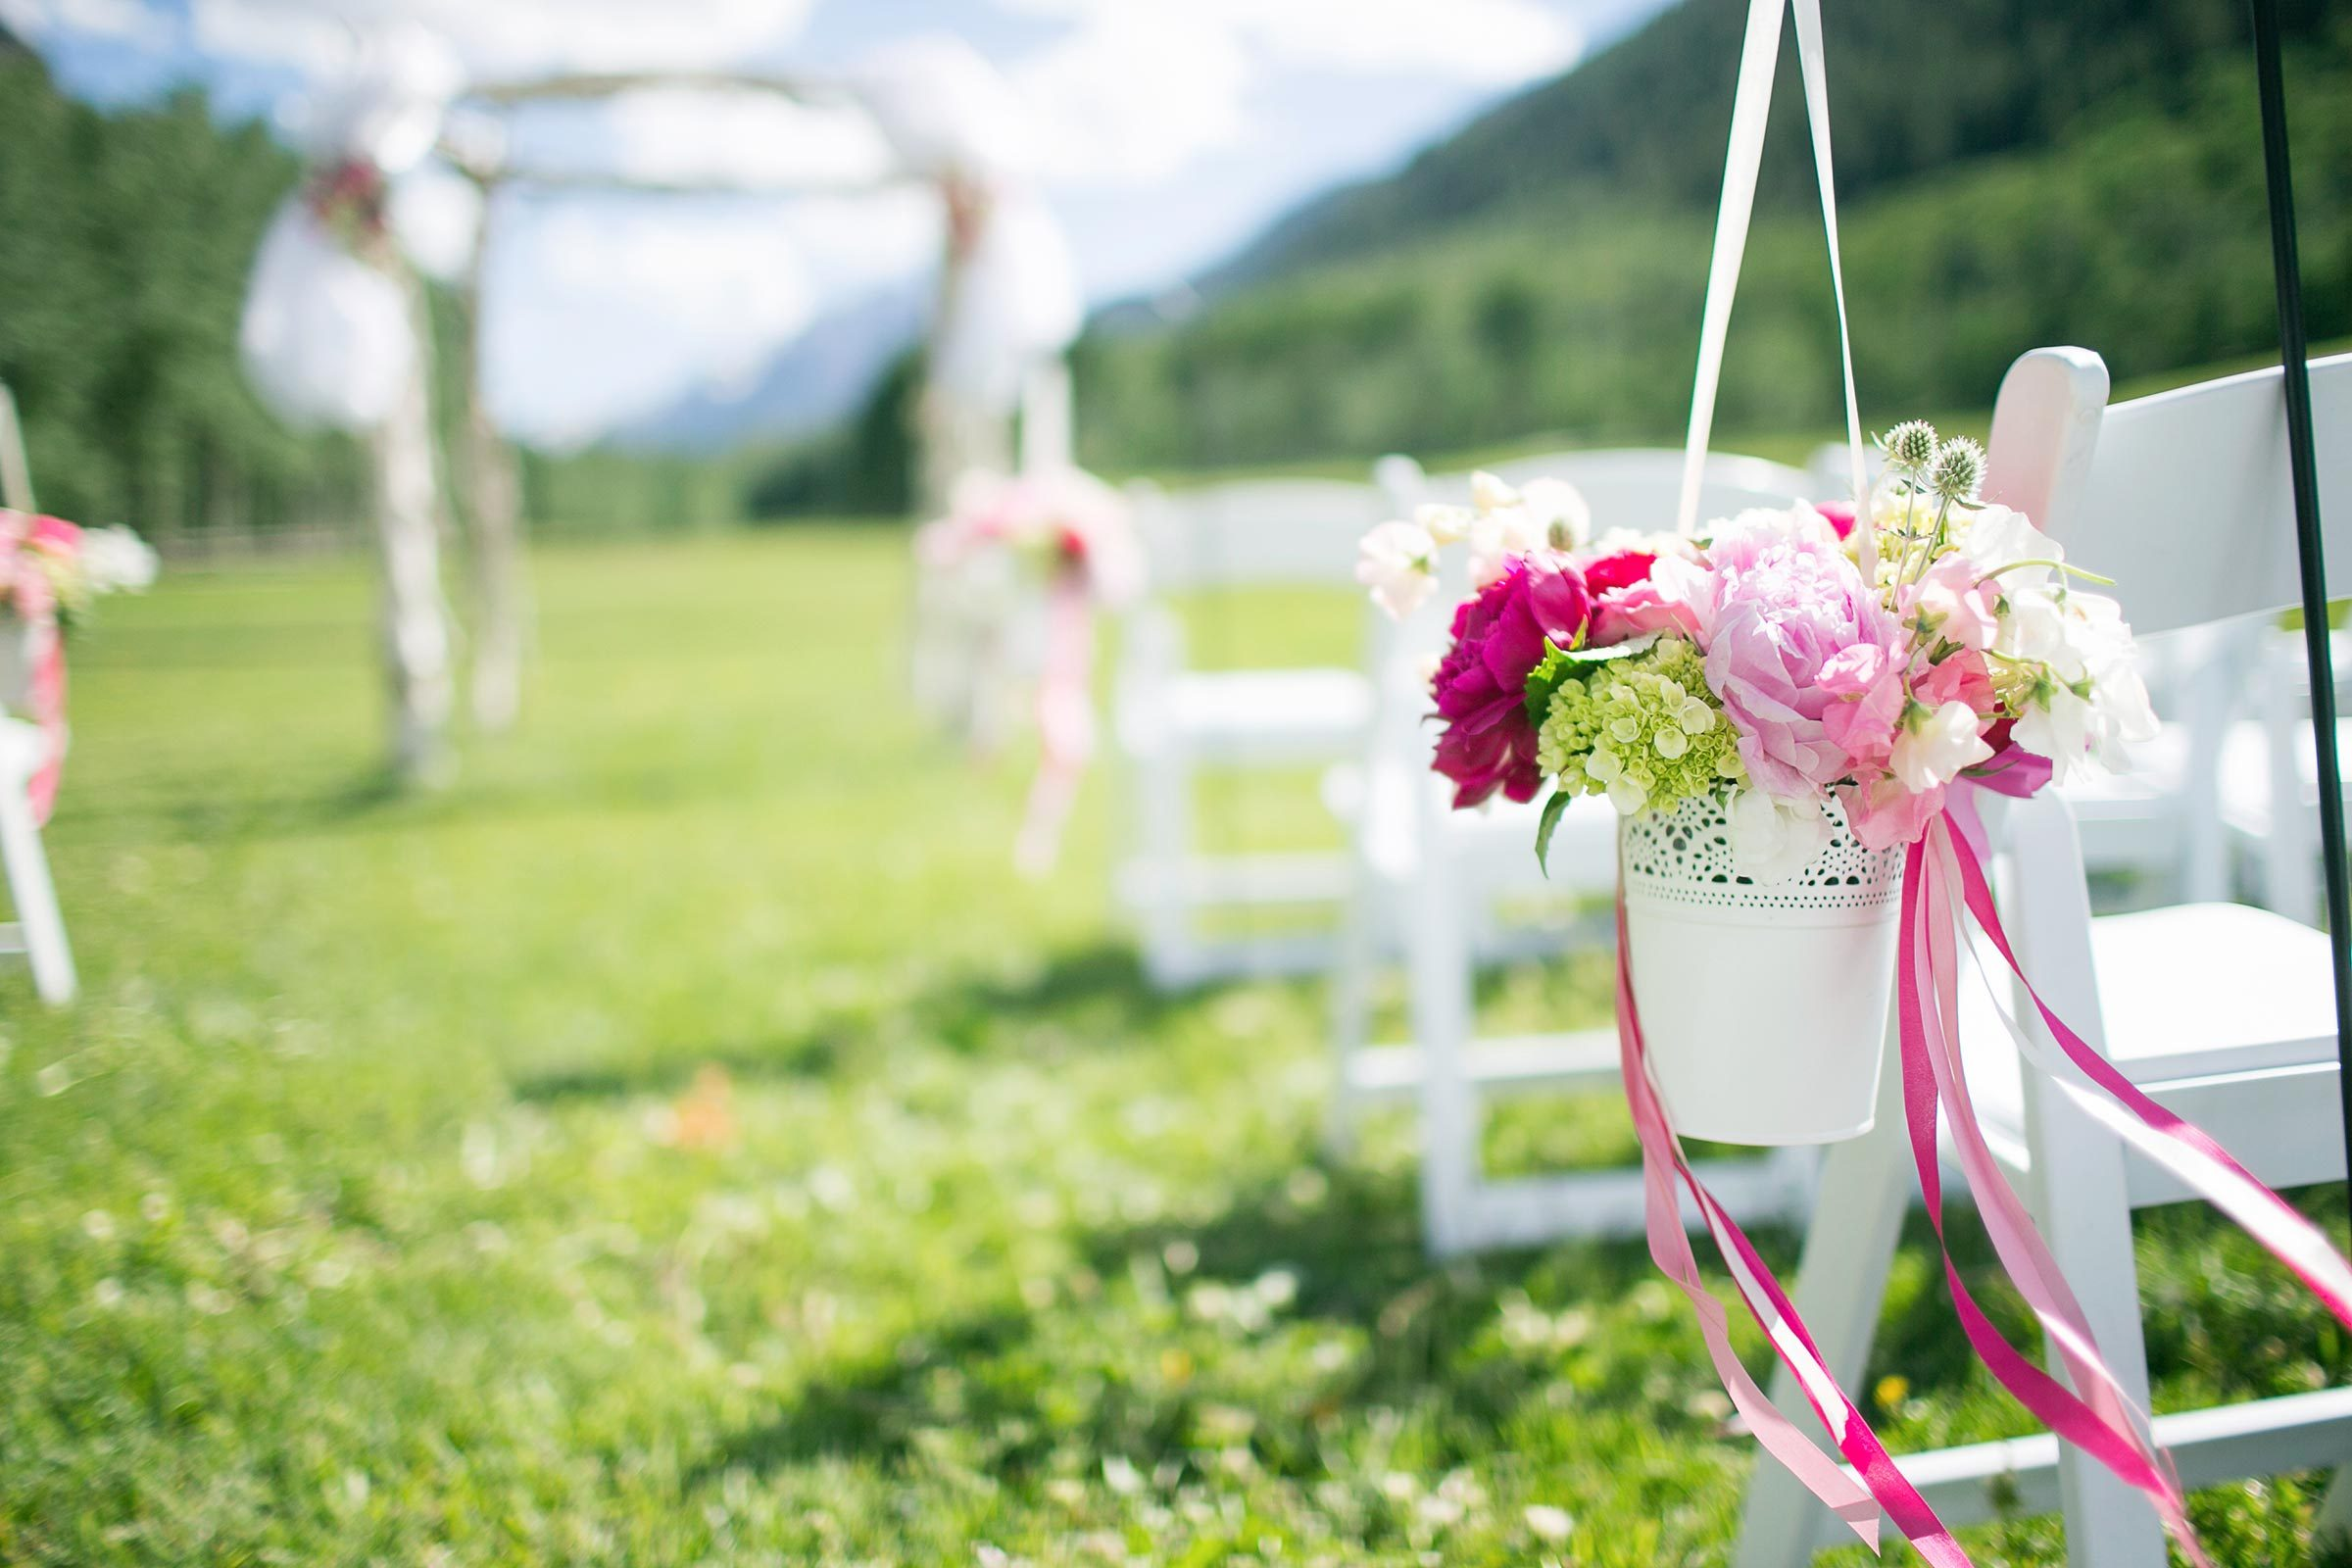 Reuse flowers from ceremony to reception if at all possible.